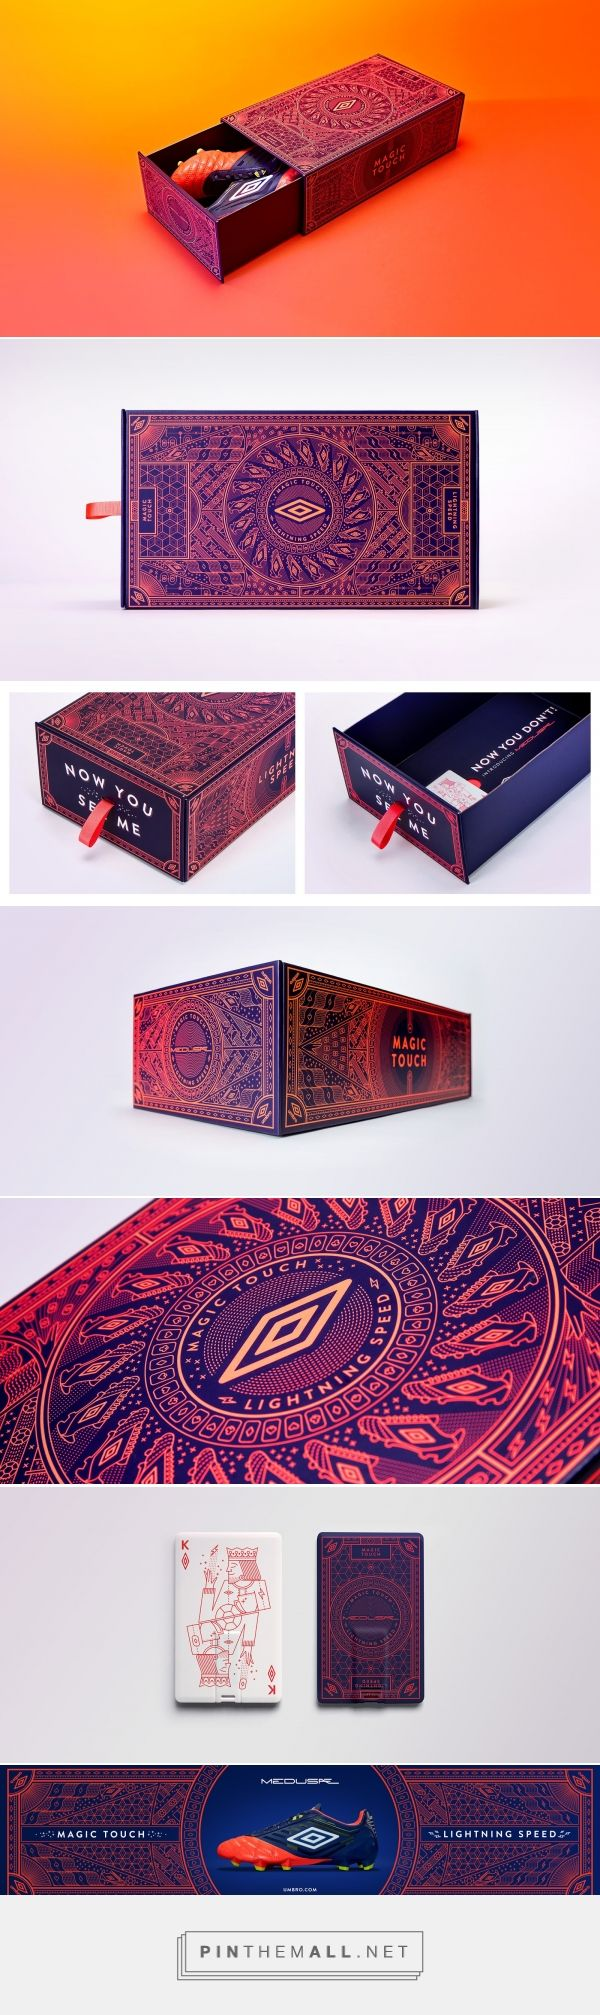 UMBRO Medusae Boot Launch packaging design by LOVE X TJ Nicklin Illustration - http://www.packagingoftheworld.com/2017/04/umbro-medusae-boot-launch.html